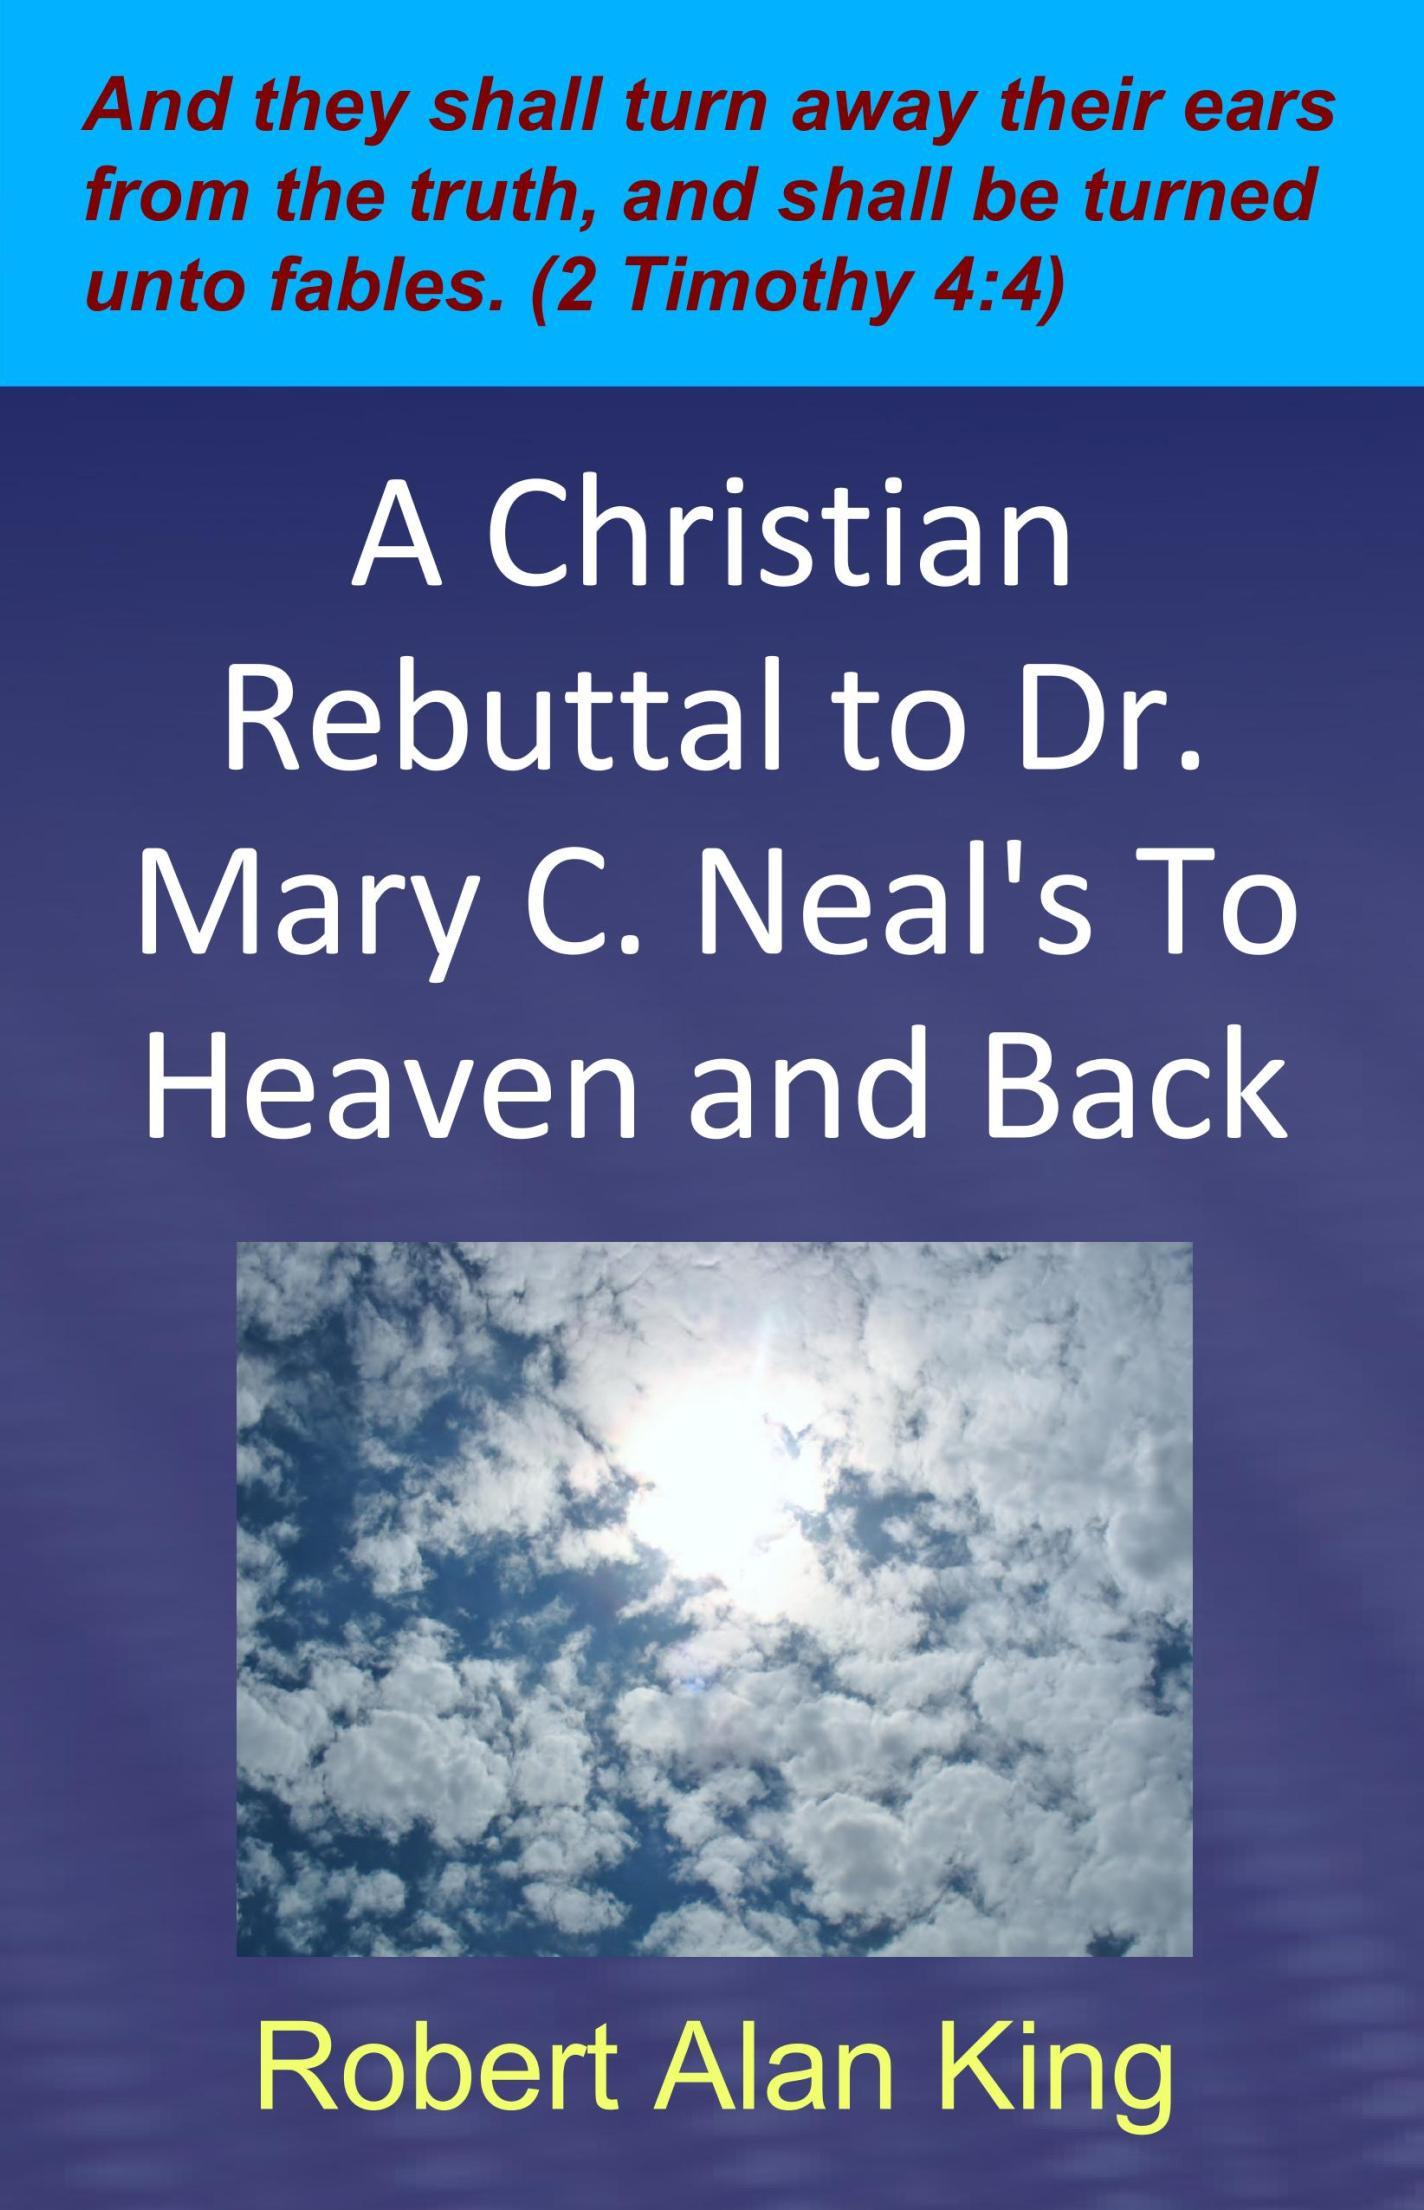 A Christian Rebuttal to Dr. Mary C. Neal's To Heaven and Back